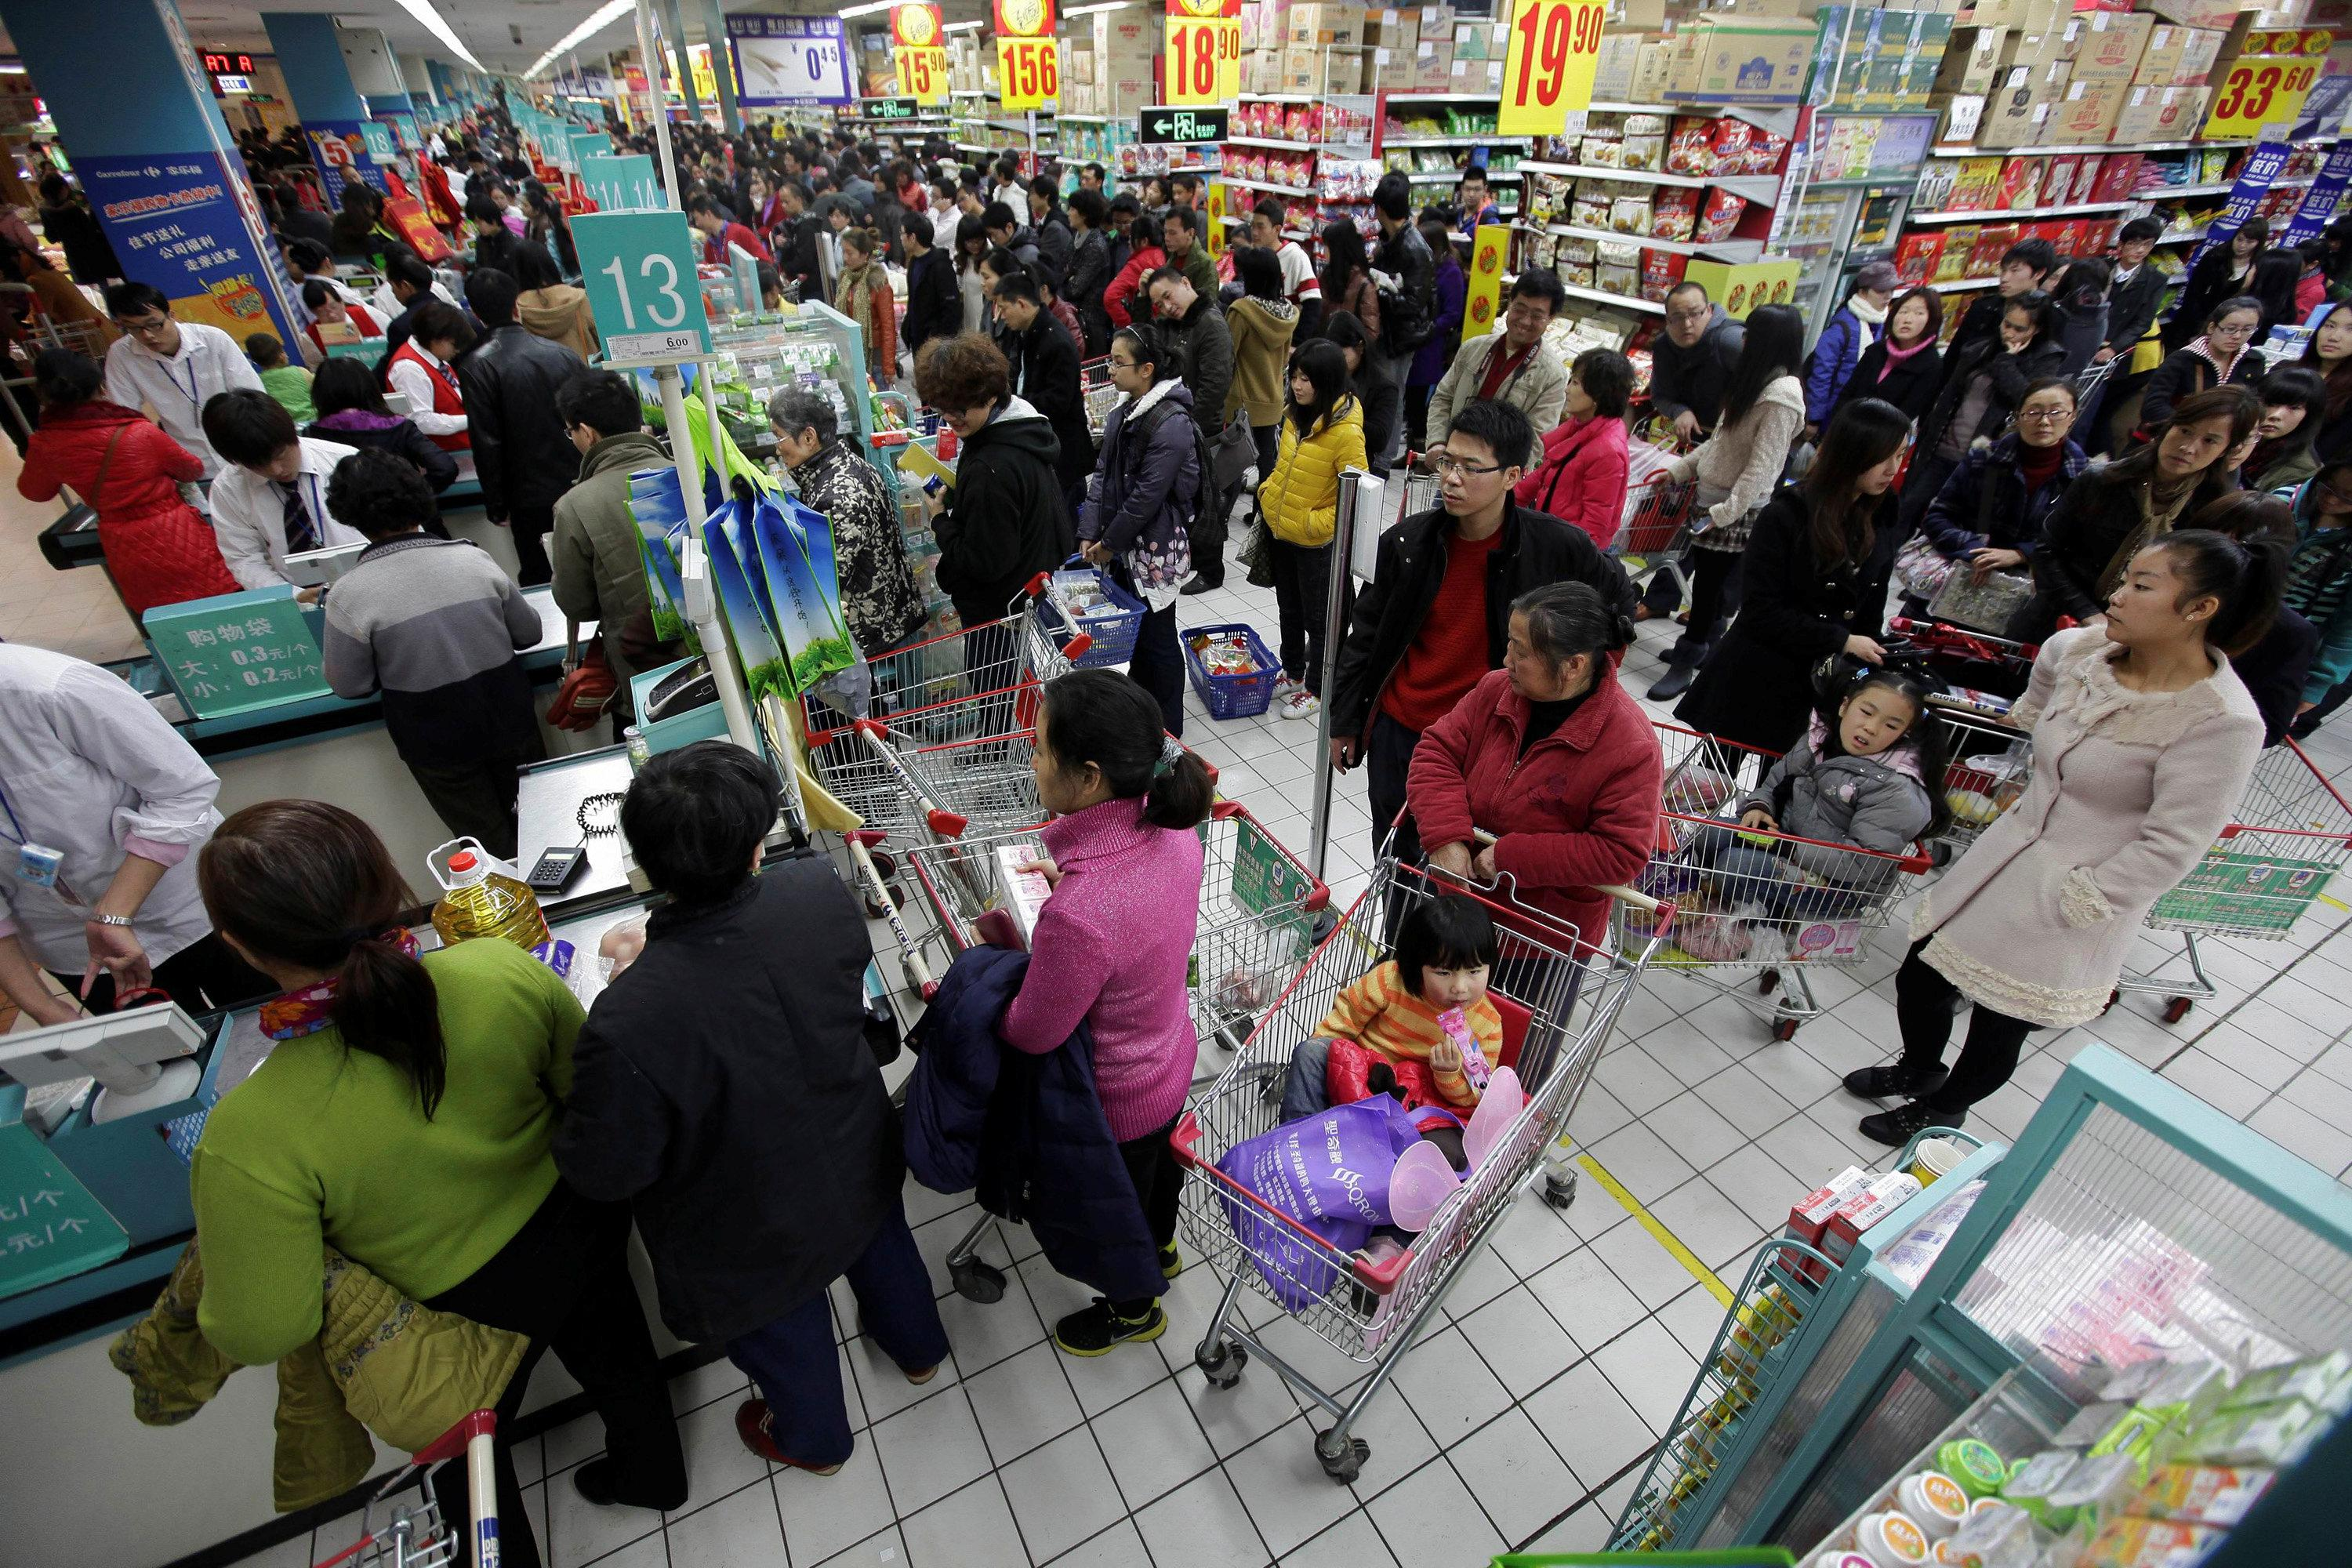 Customers queue to pay as they shop at a Carrefour supermarket in Wuhan, Hubei province December 3, 2011.  Stringer